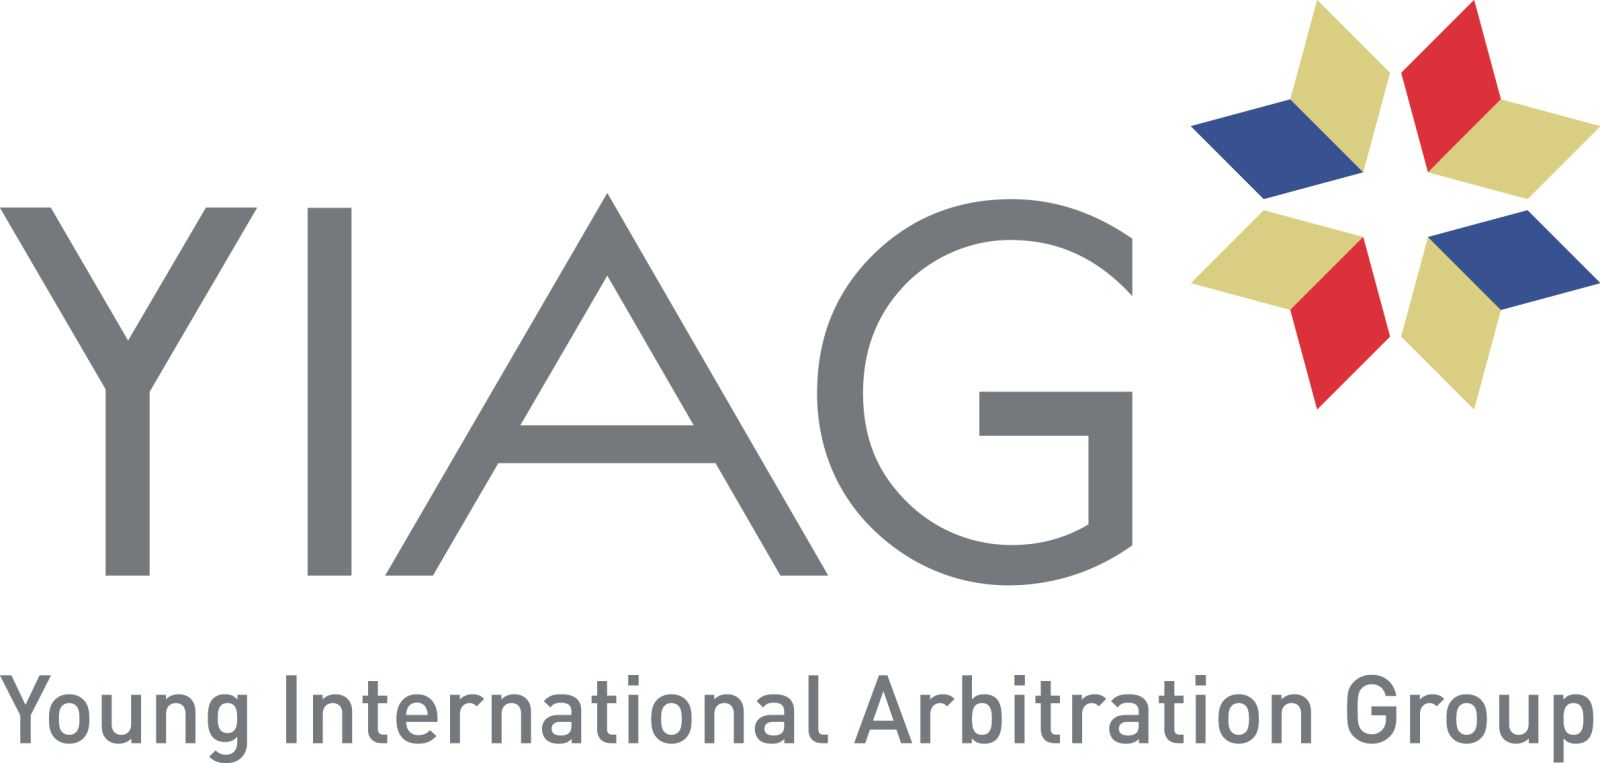 Young International Arbitration Group (YIAG)